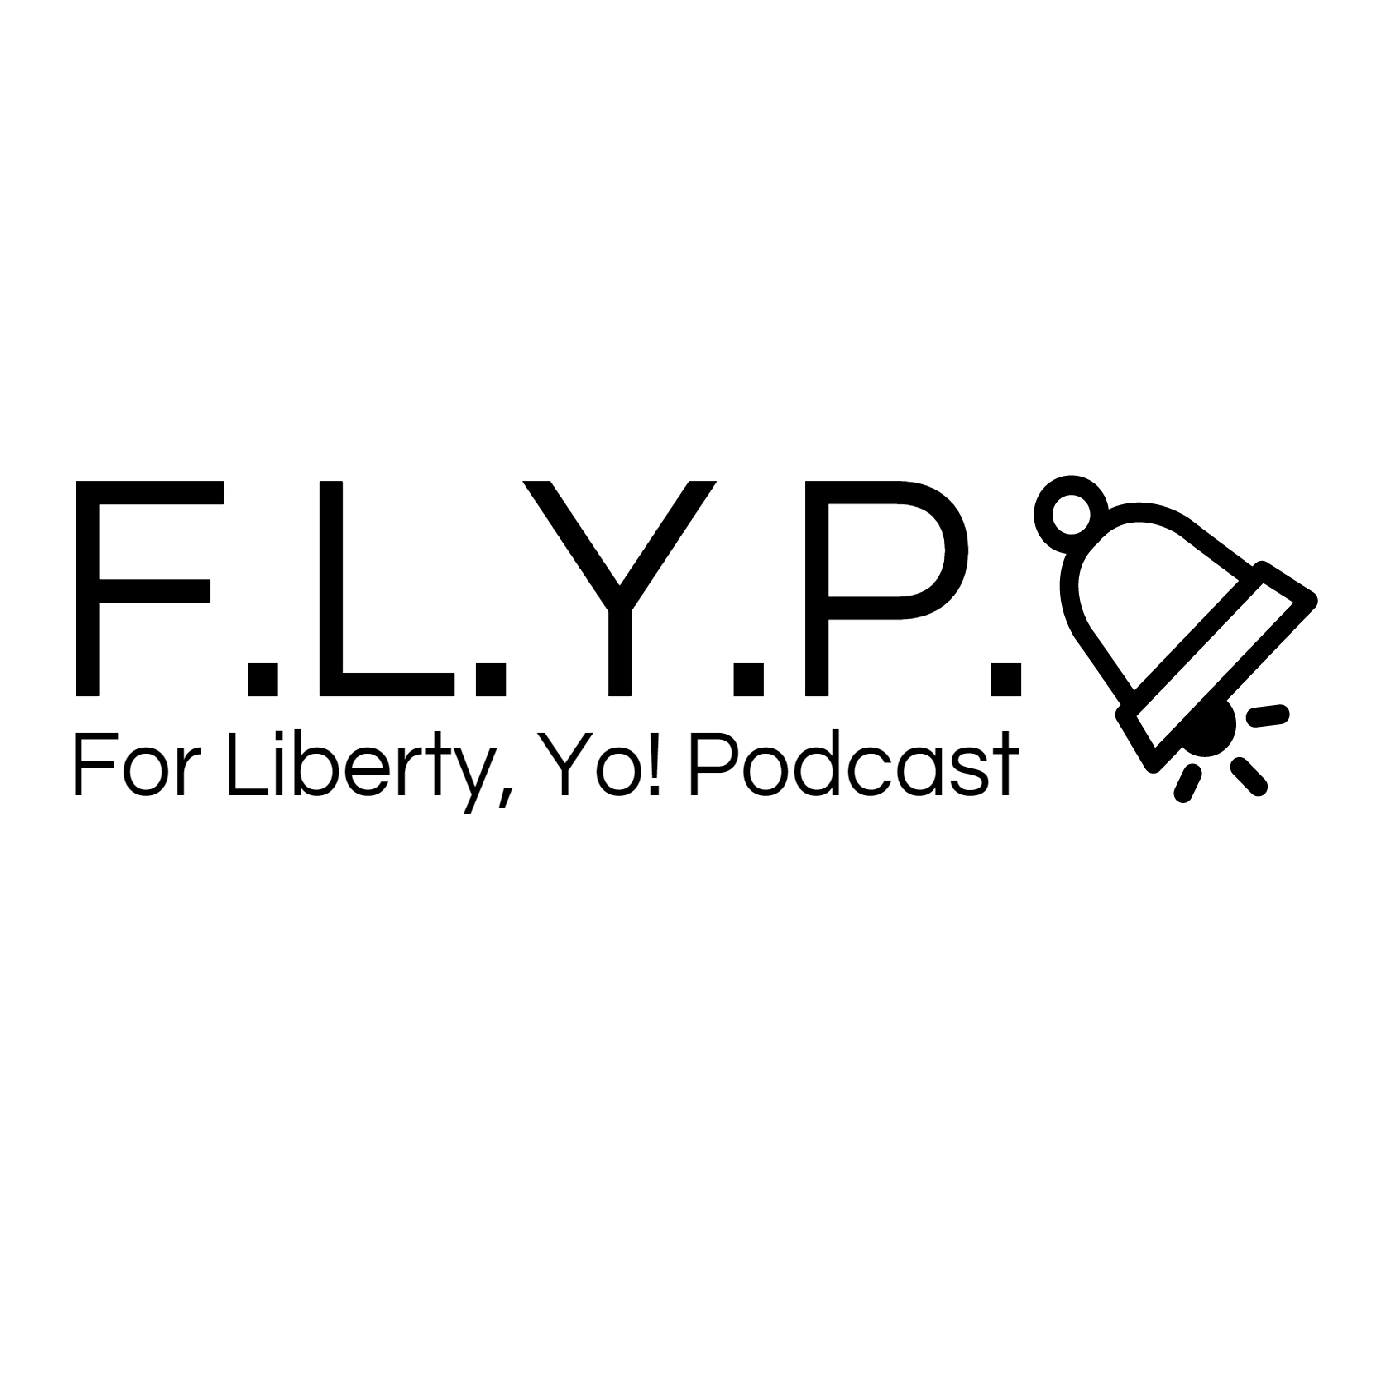 For Liberty, Yo! Podcast - F.L.Y.P.